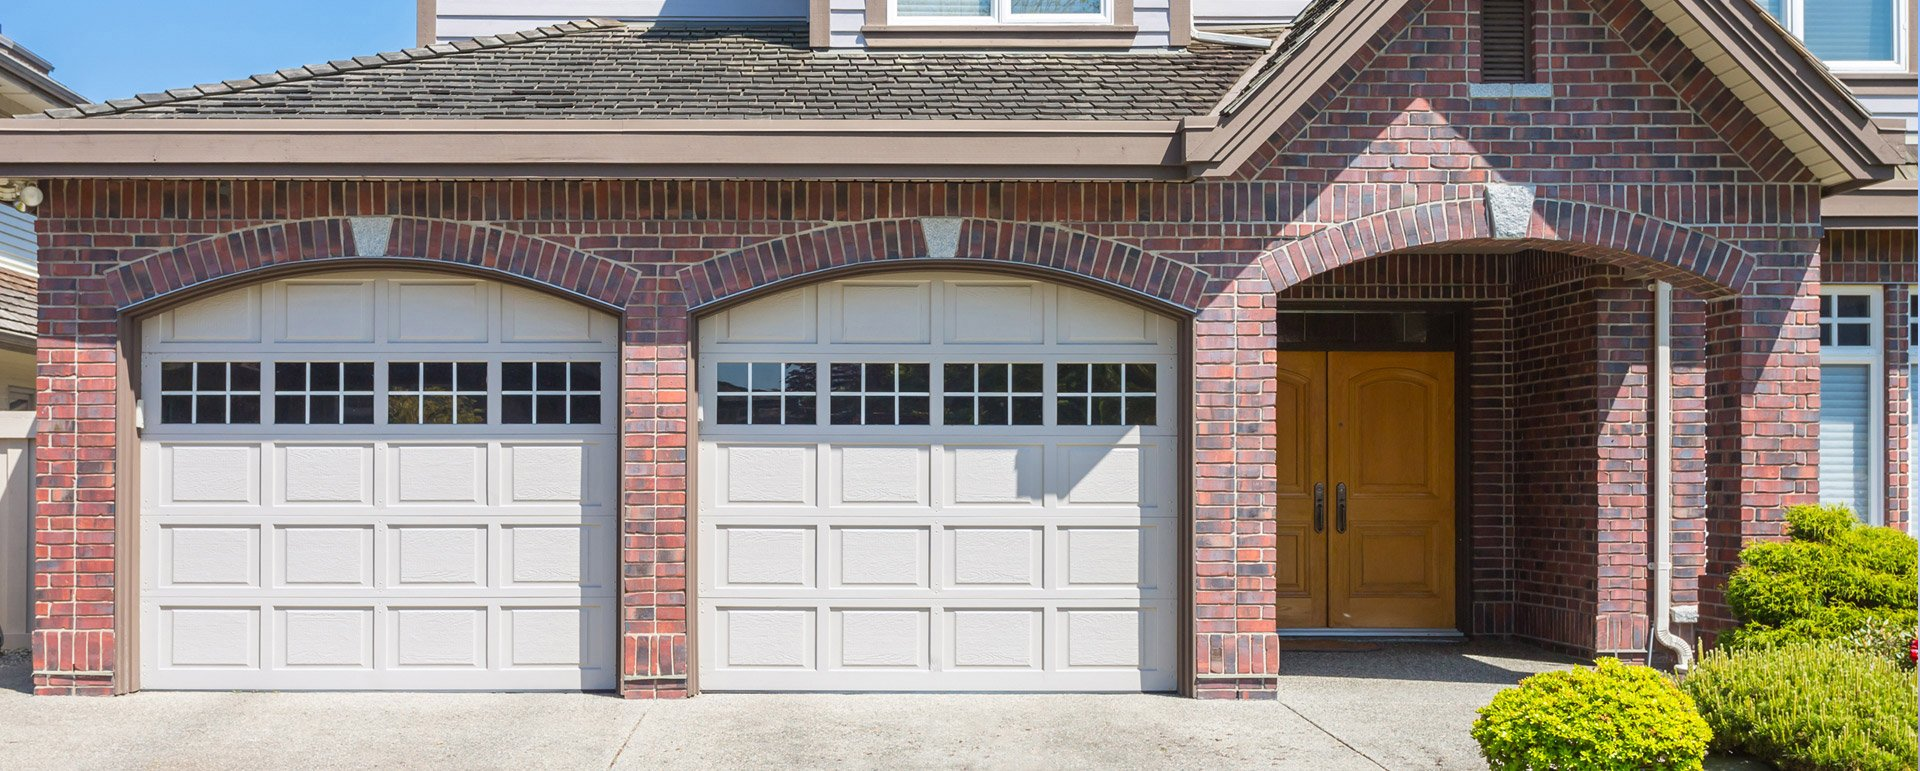 garage door for your home